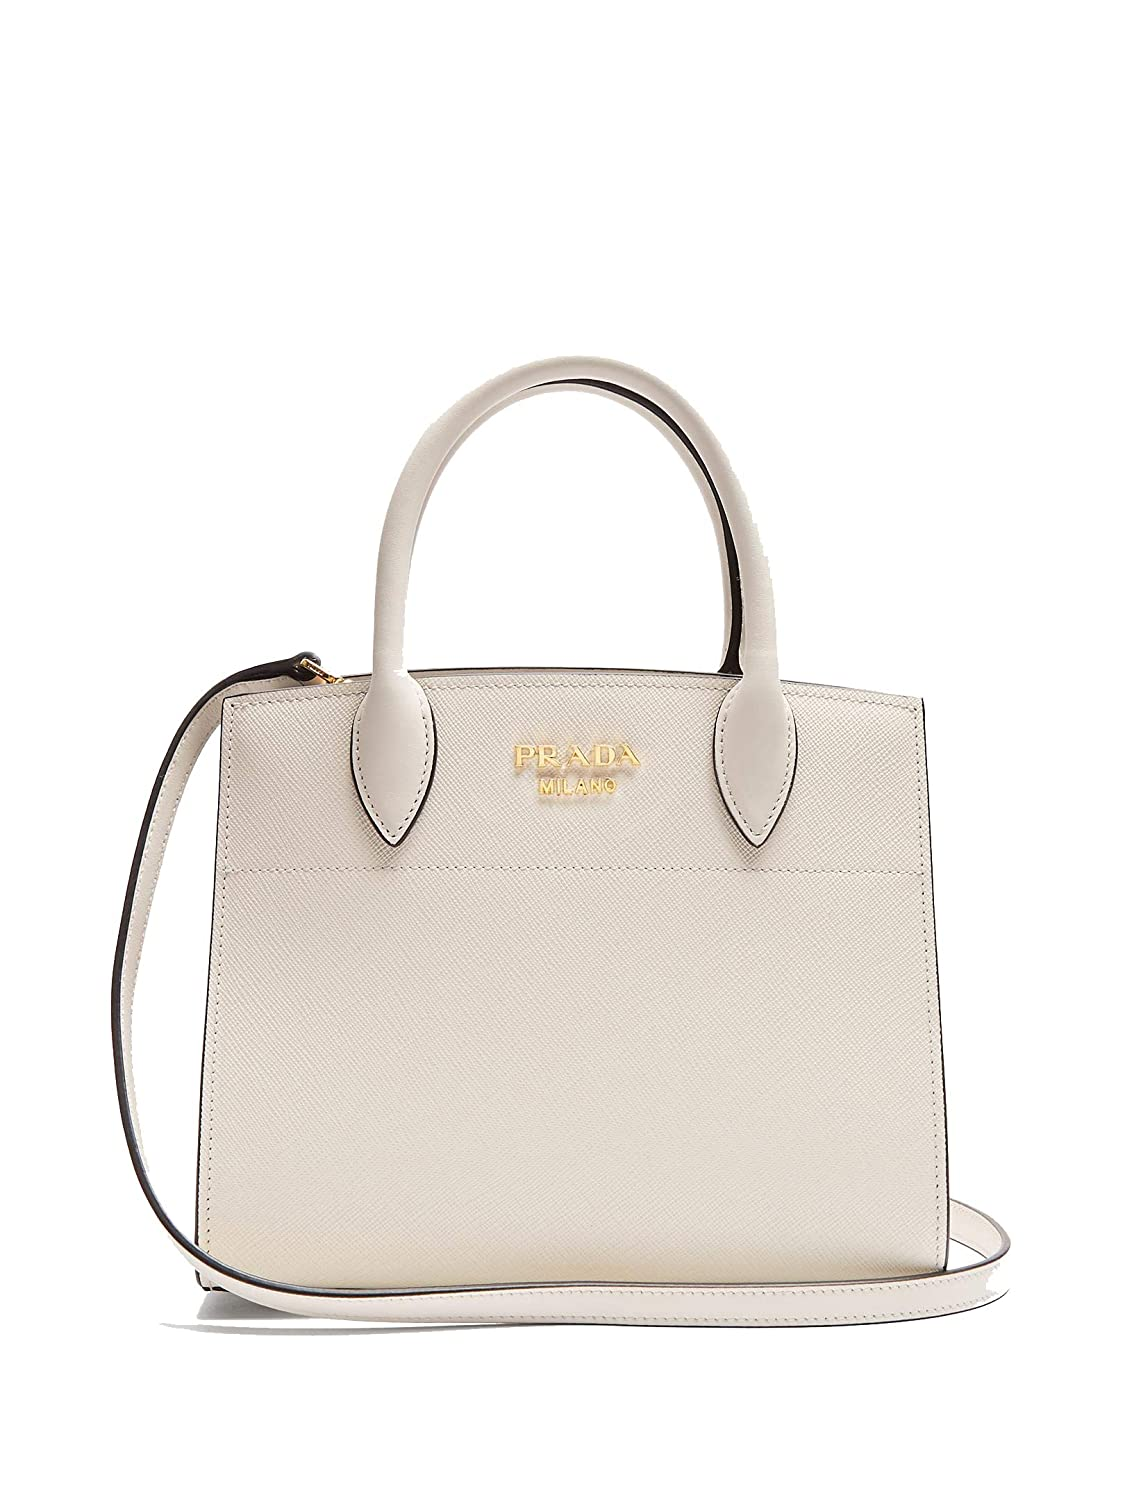 e377f20b64 Prada Saffiano City Leather White Handbag w Black Trim Bibliotheque Tote Bag  1BA049: Handbags: Amazon.com